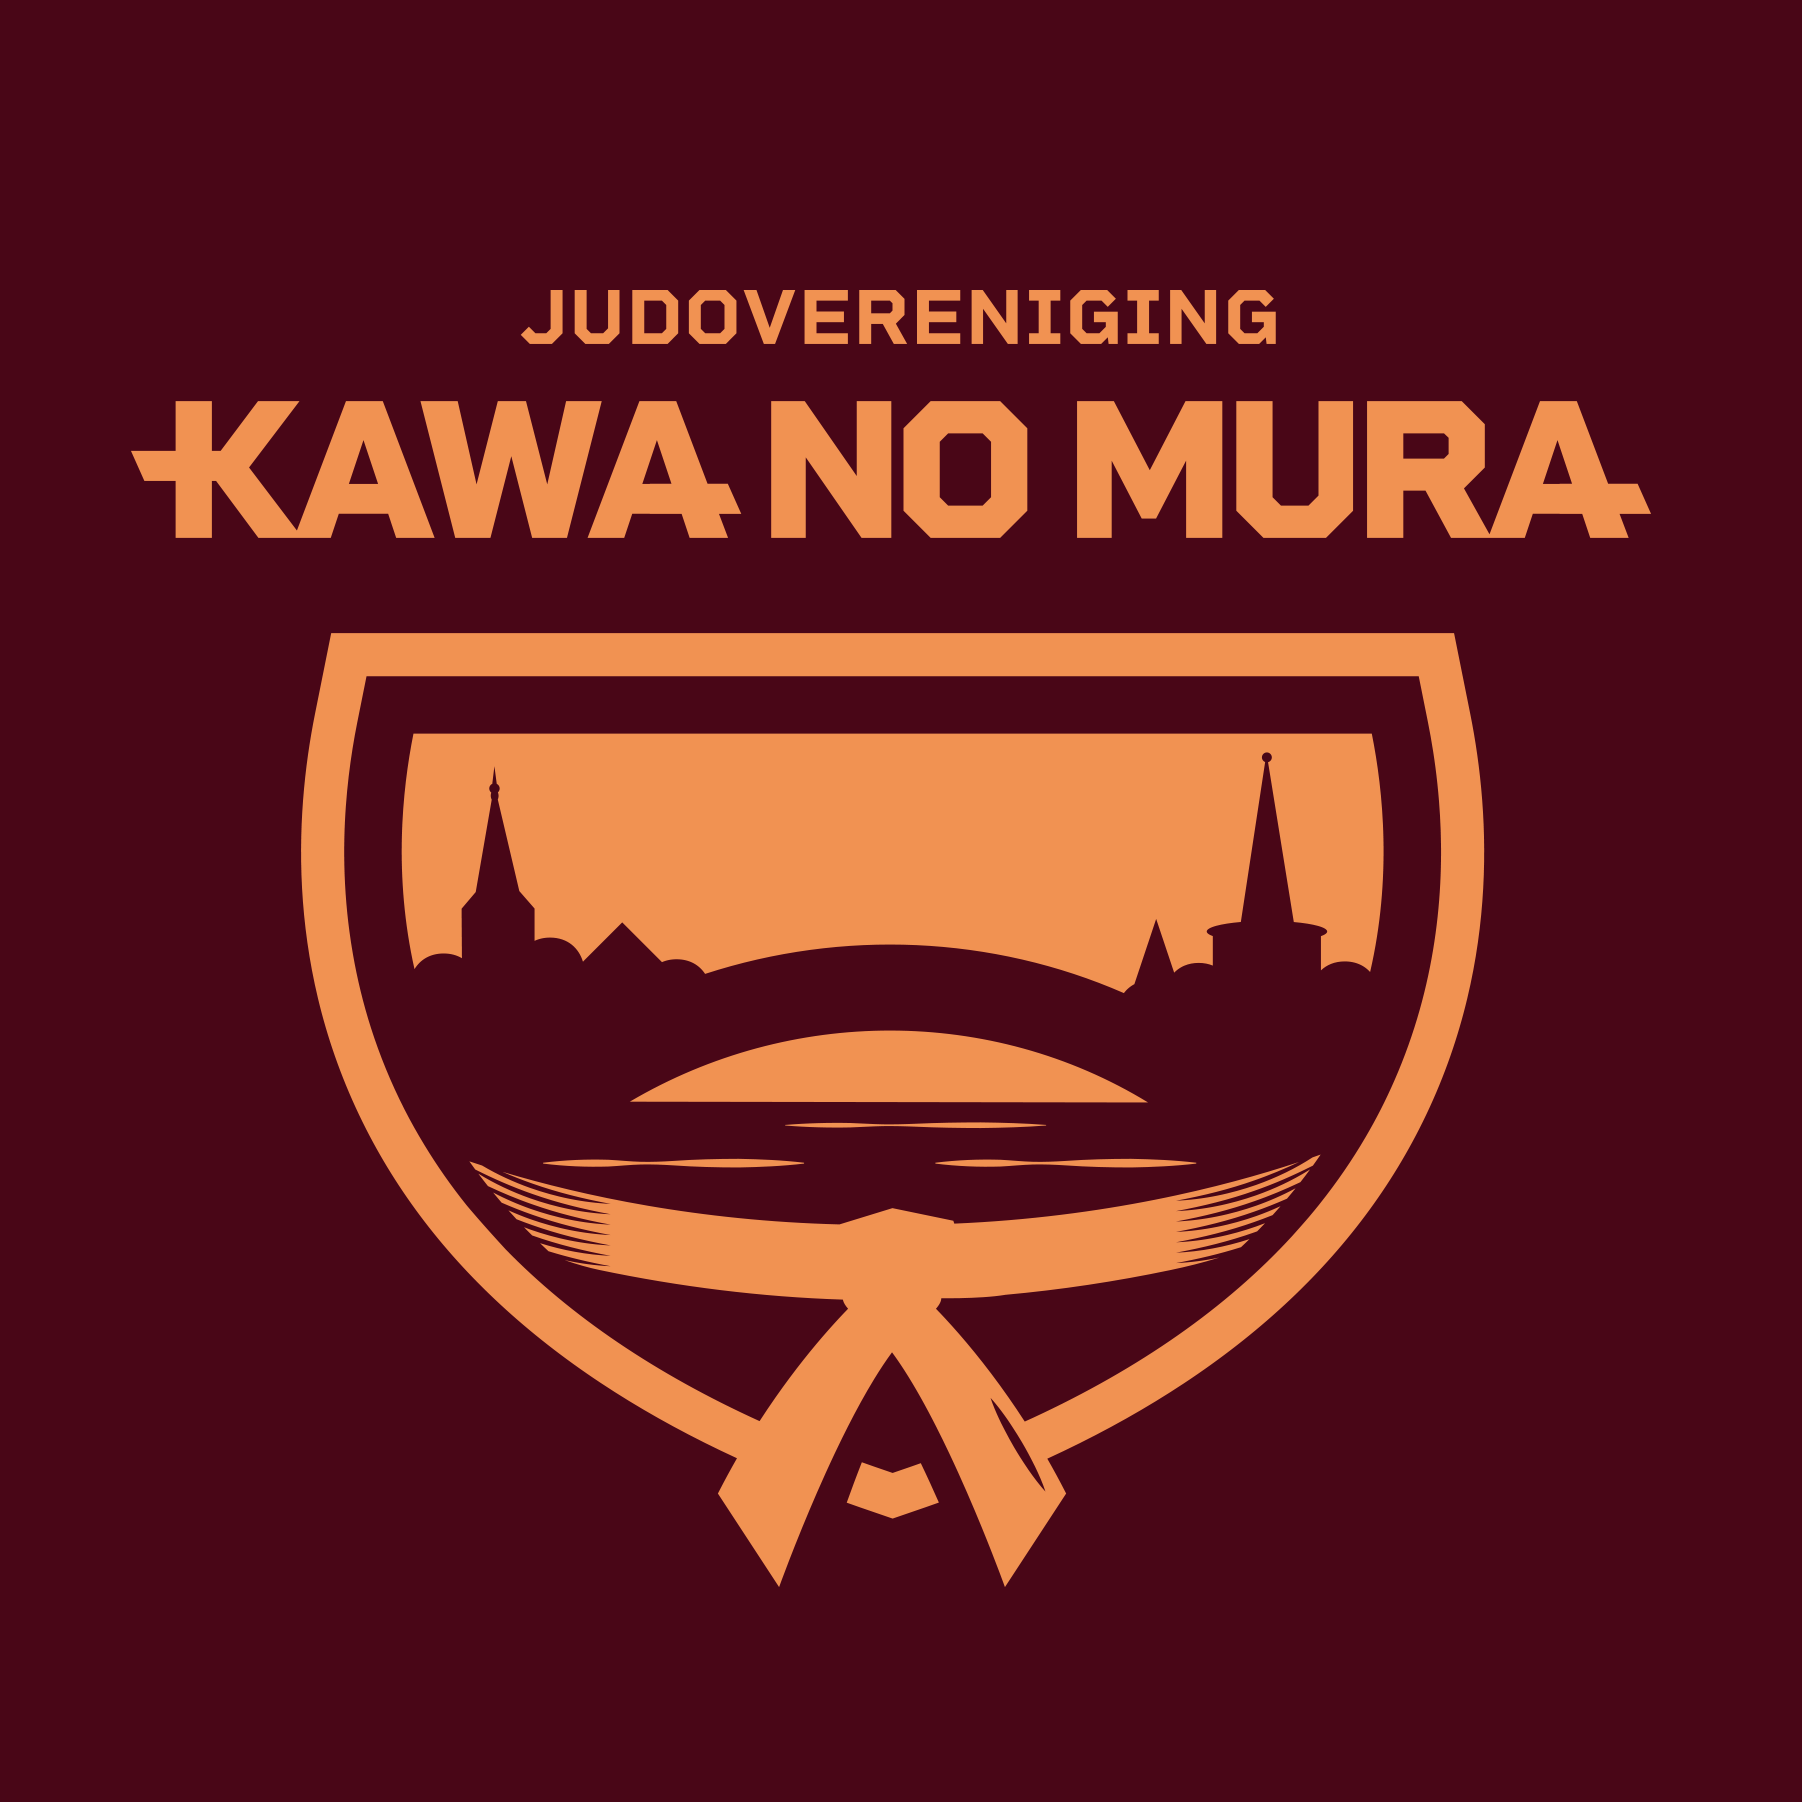 Judovereniging Kawa No Mura